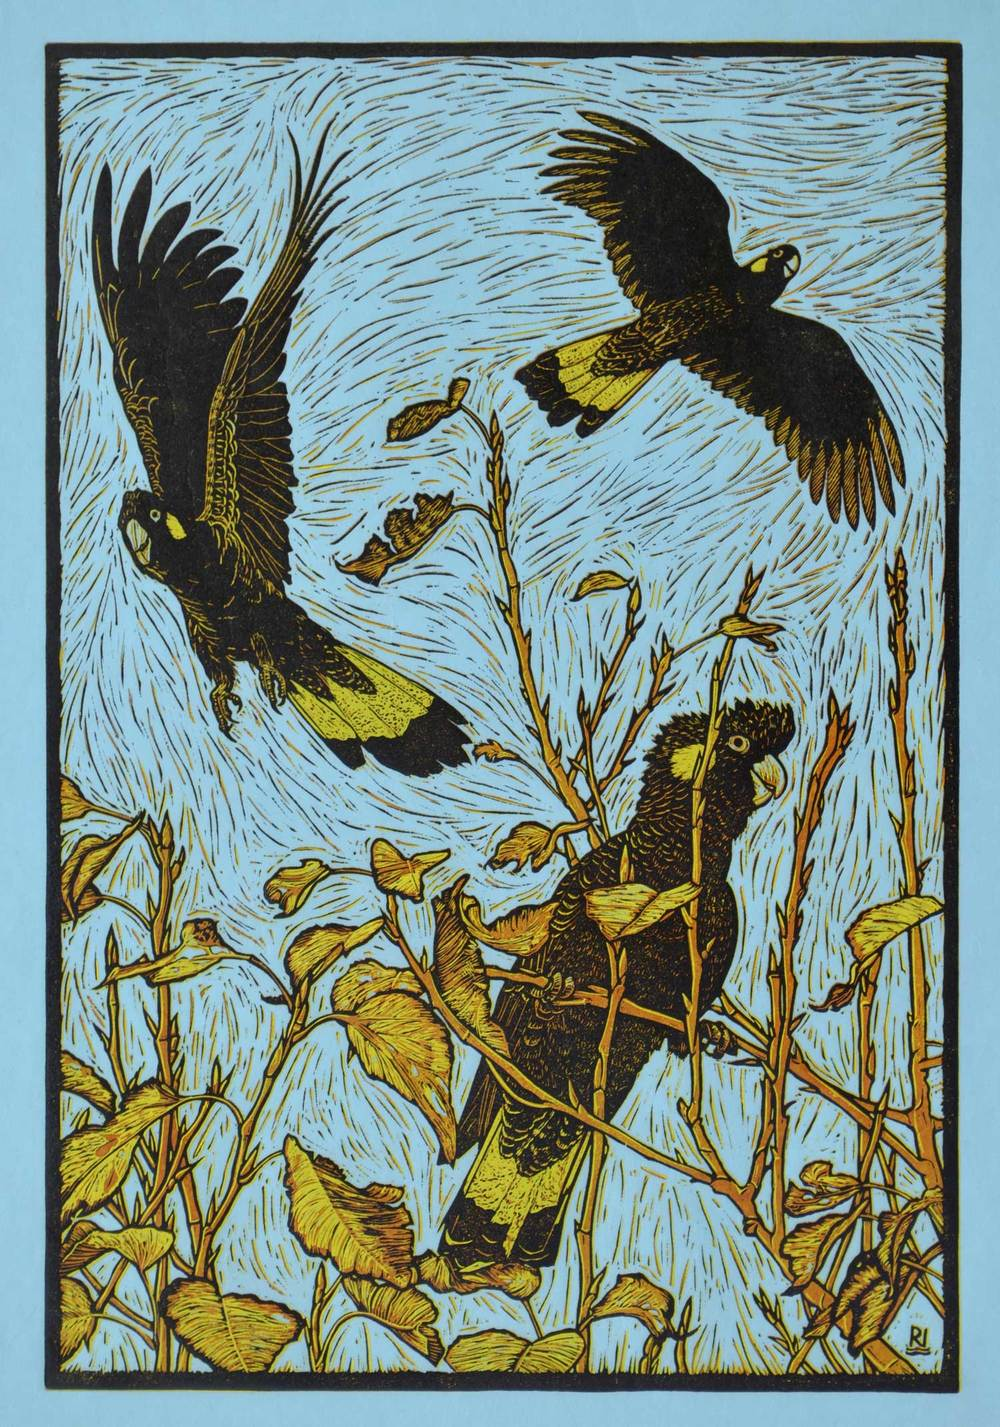 THREE YELLOW-TAILED BLACK COCKATOOS (reduction version) 53.5 X 36.5 CM    EDITION OF 7 REDUCTION LINOCUT ON HANDMADE JAPANESE PAPER $1,000